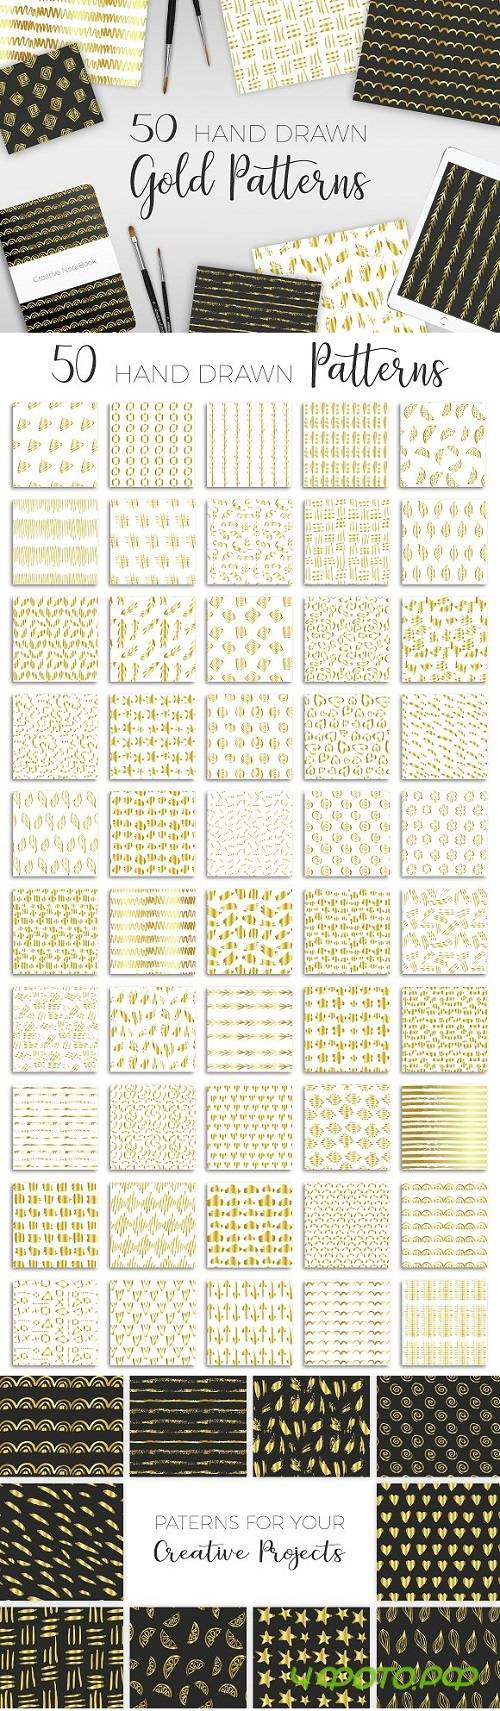 Christmas Golden Patterns - 1723375